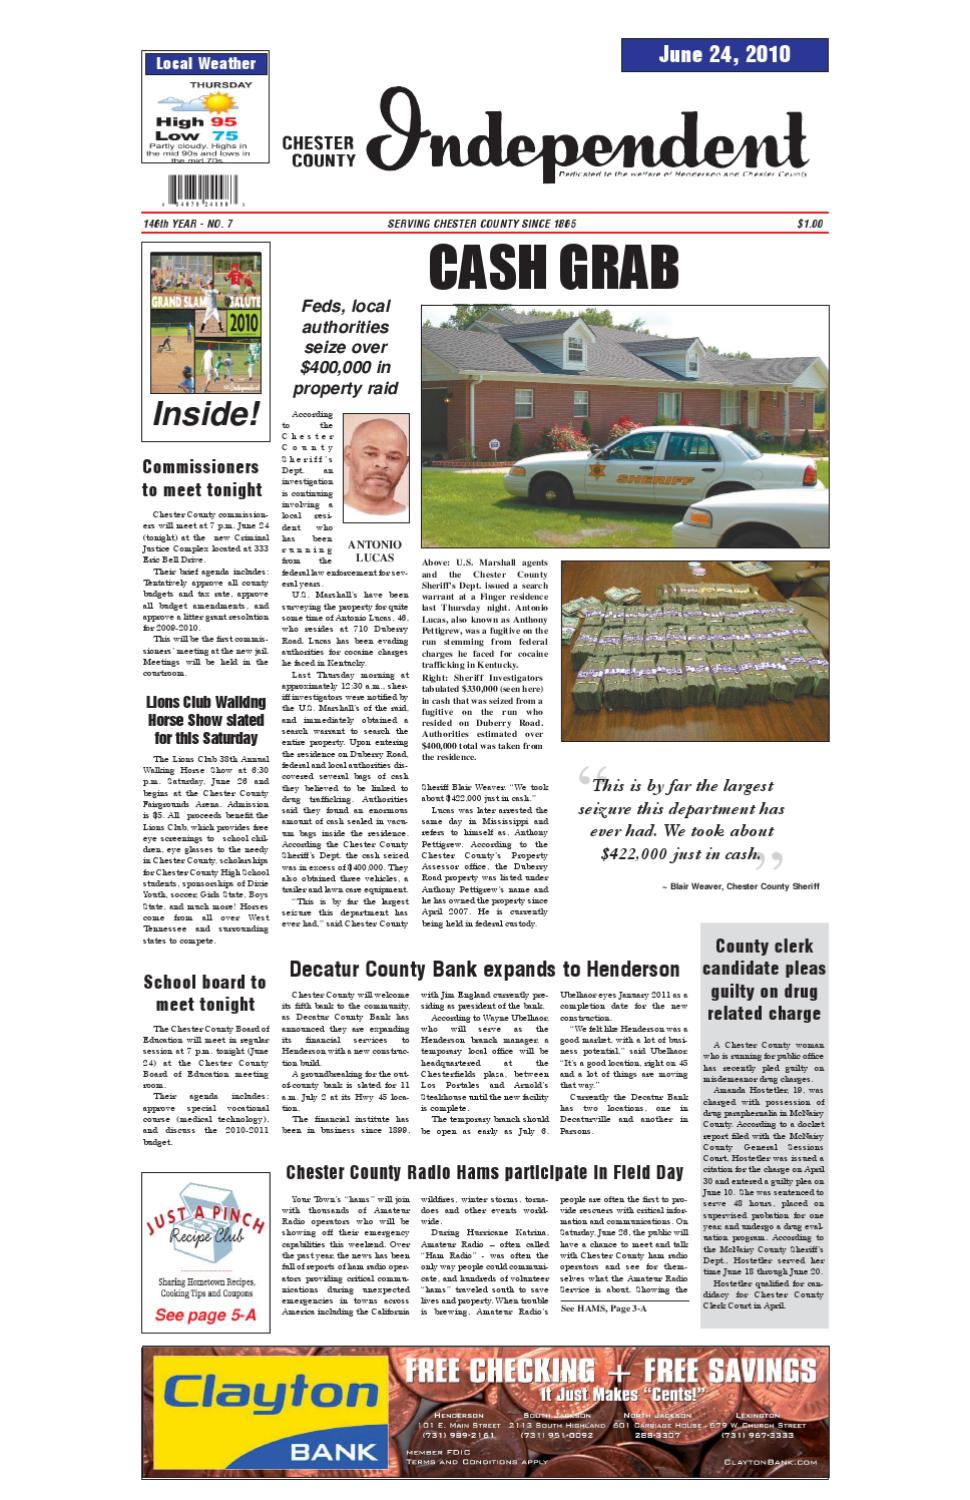 Tennessee chester county enville - Chester County Independent 06 24 10 By Chester County Independent Issuu